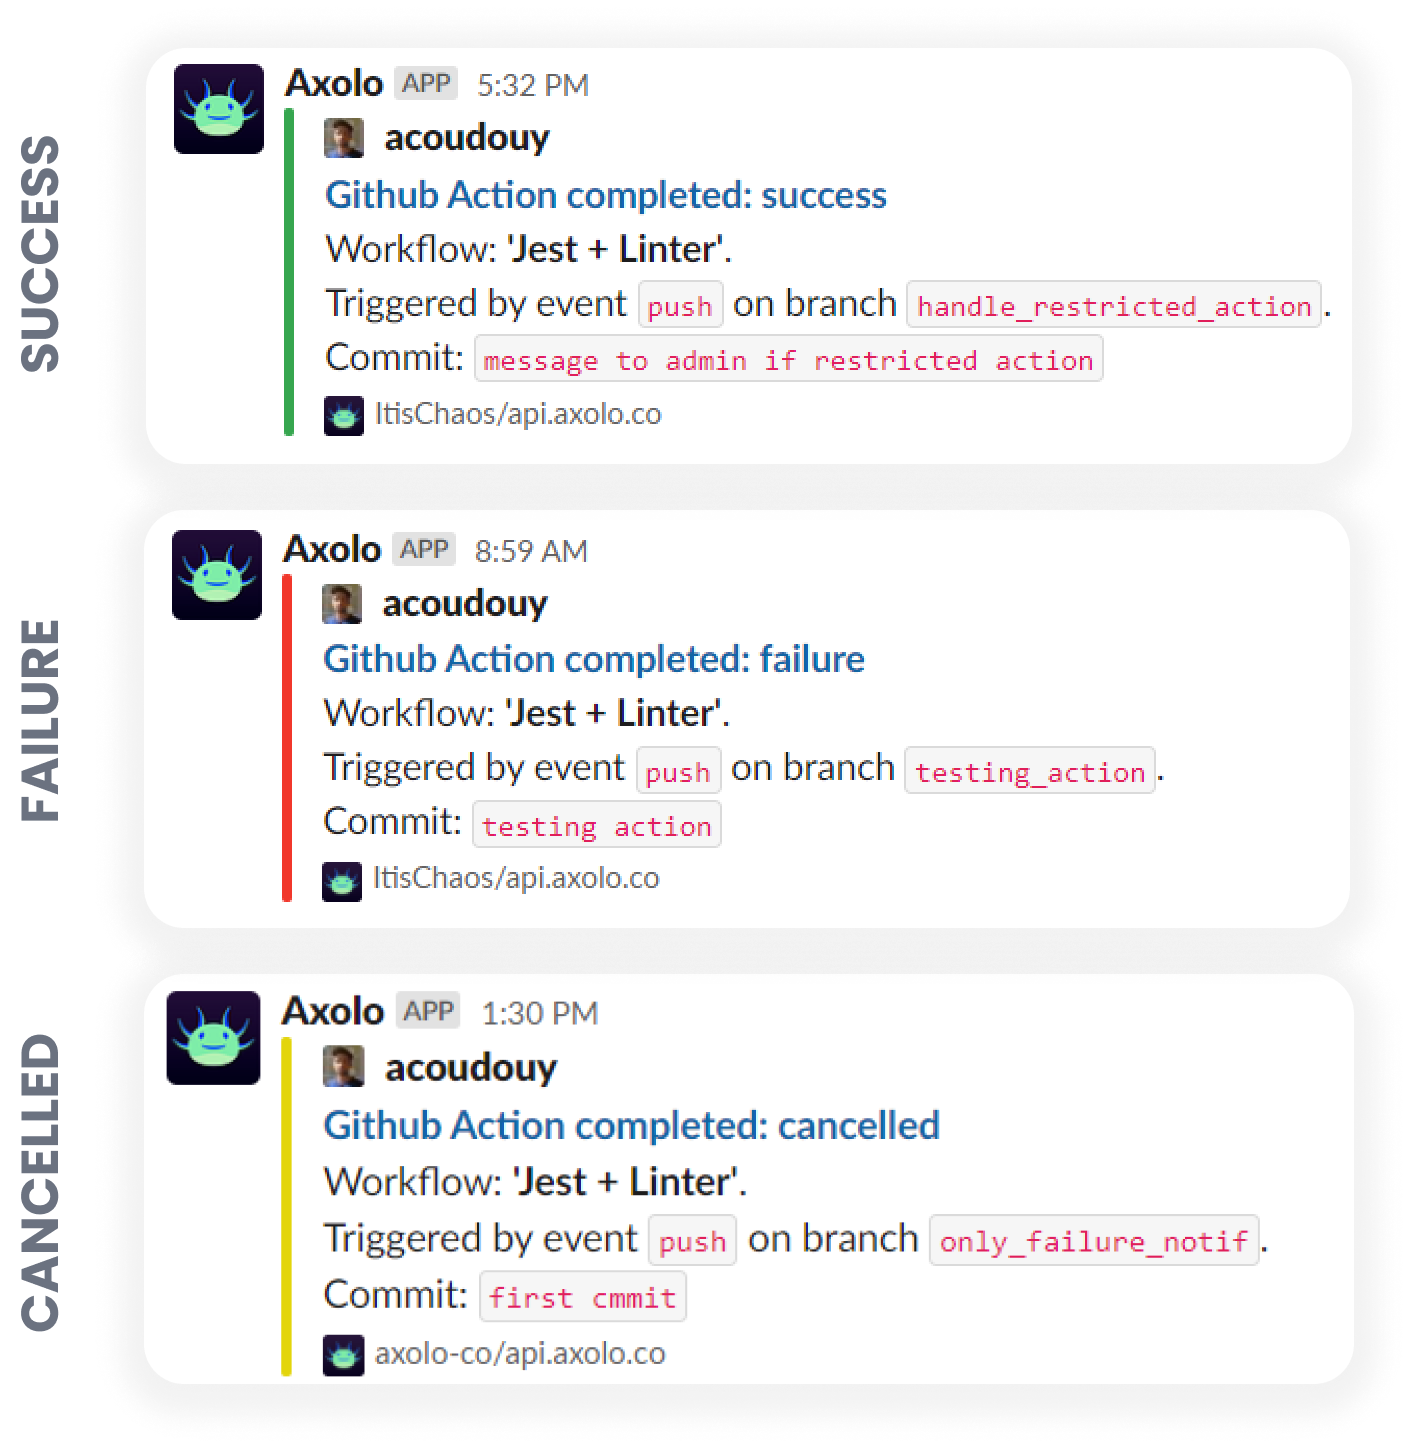 Axolo deployment and github action notifications